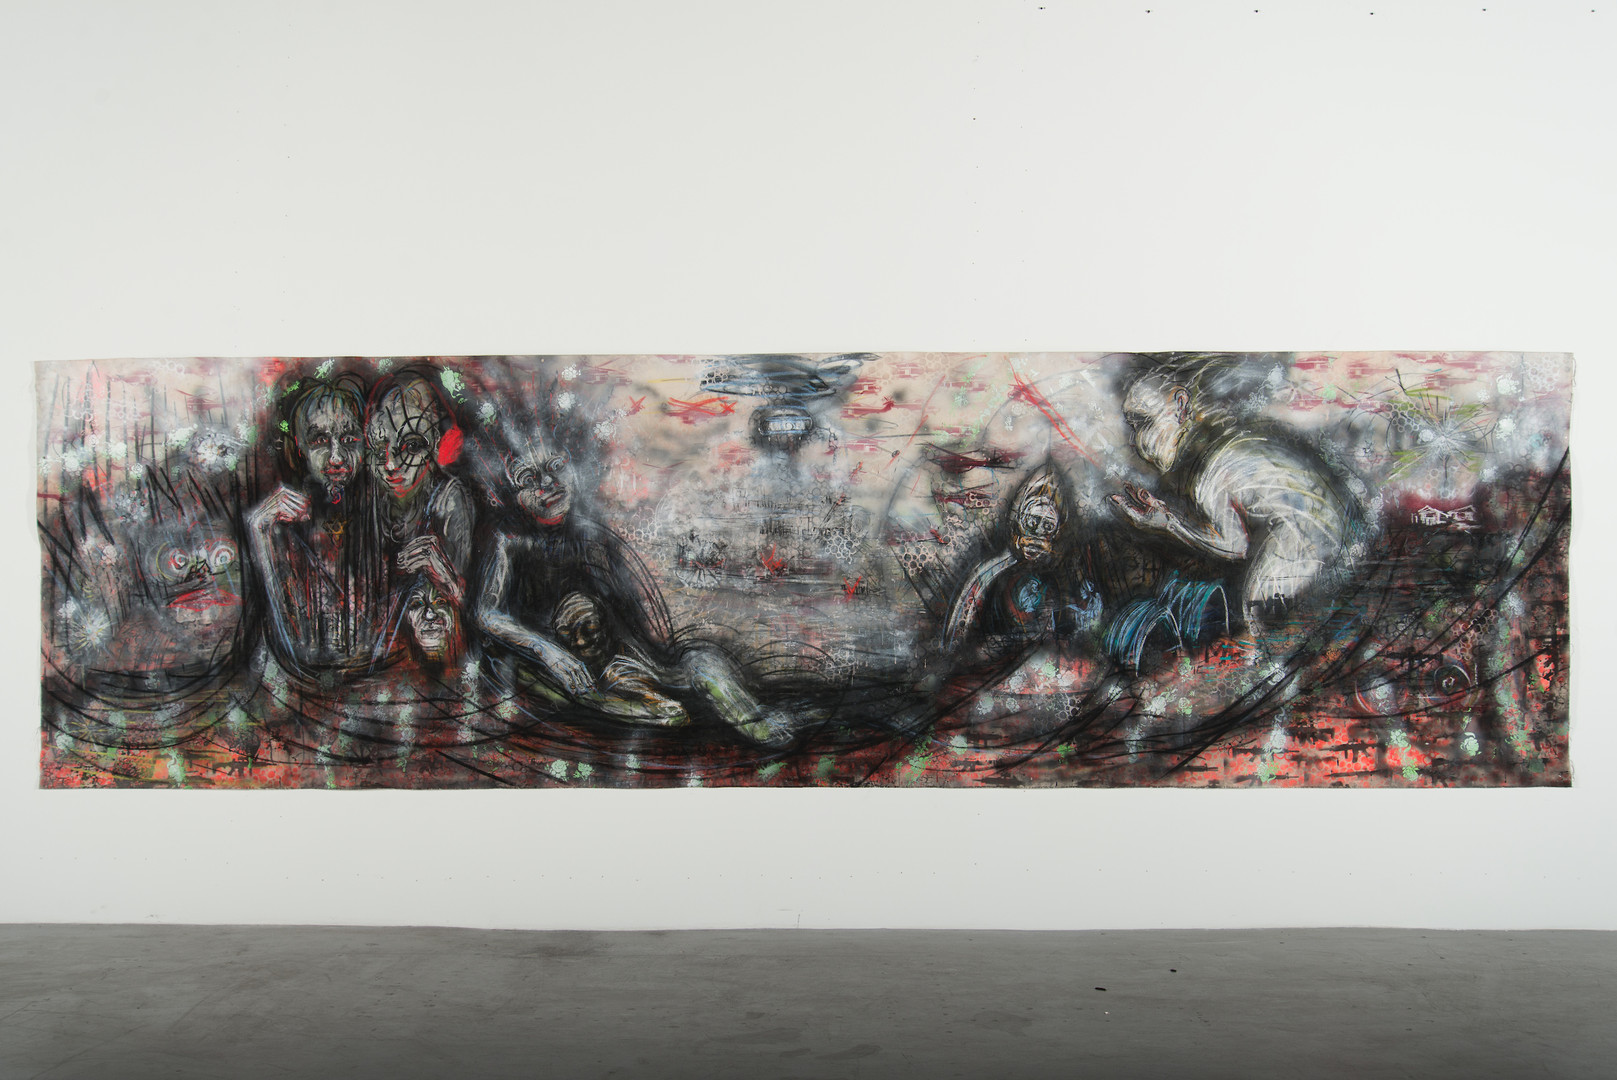 Drone Attack_2018_charcoal, pastel, spray paint on canvas_60in x 210in